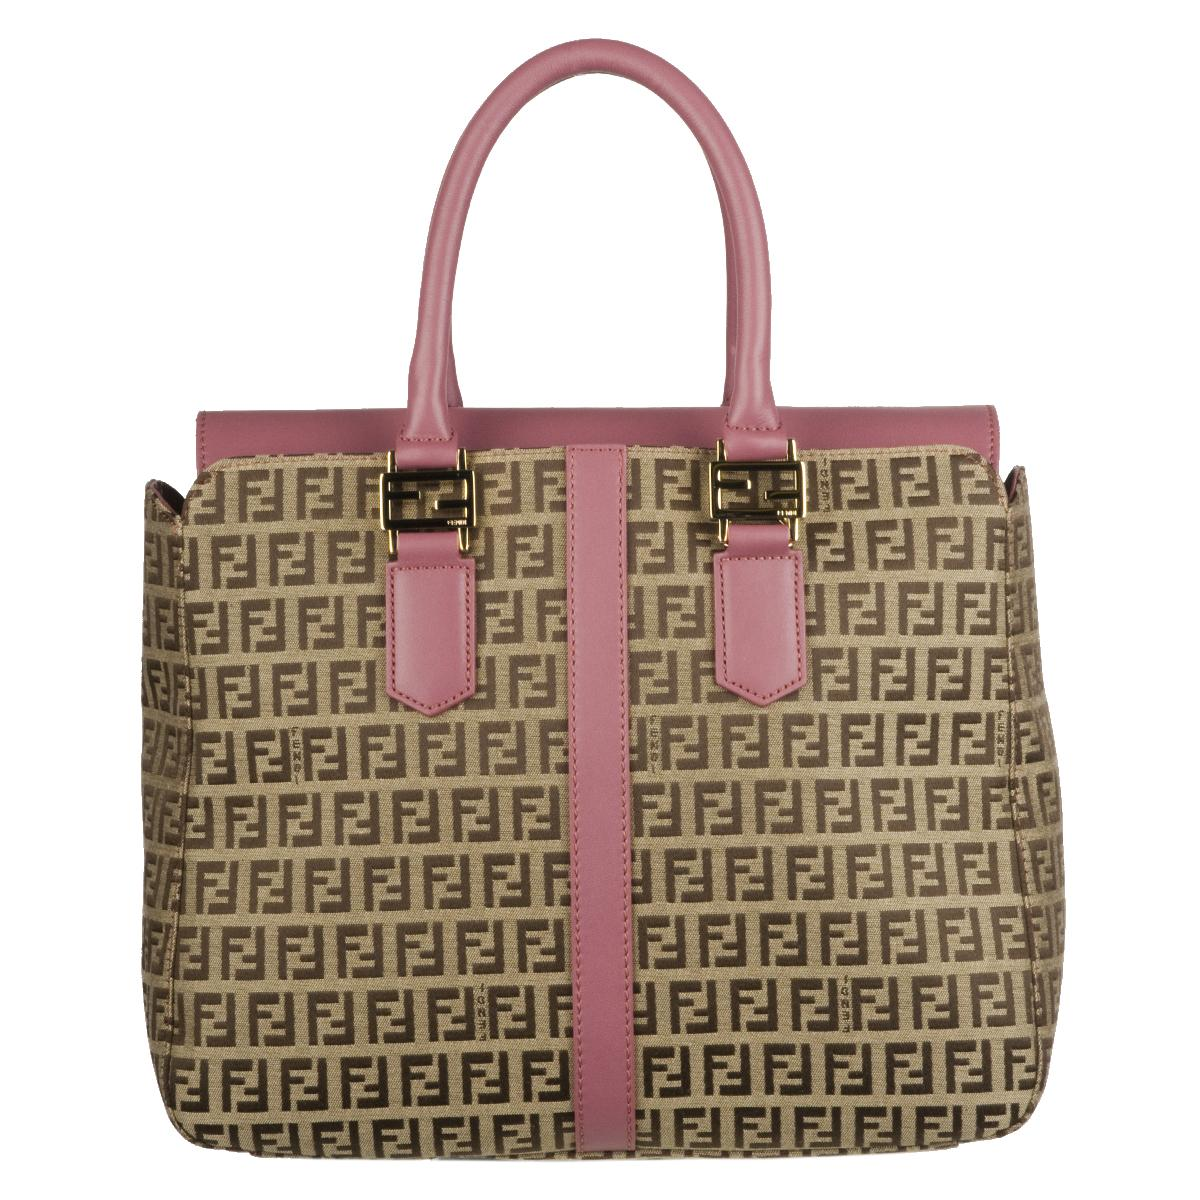 ca00bf358d33 Shop Fendi Brown Zucchino Tote Bag - Free Shipping Today - Overstock.com -  5565648